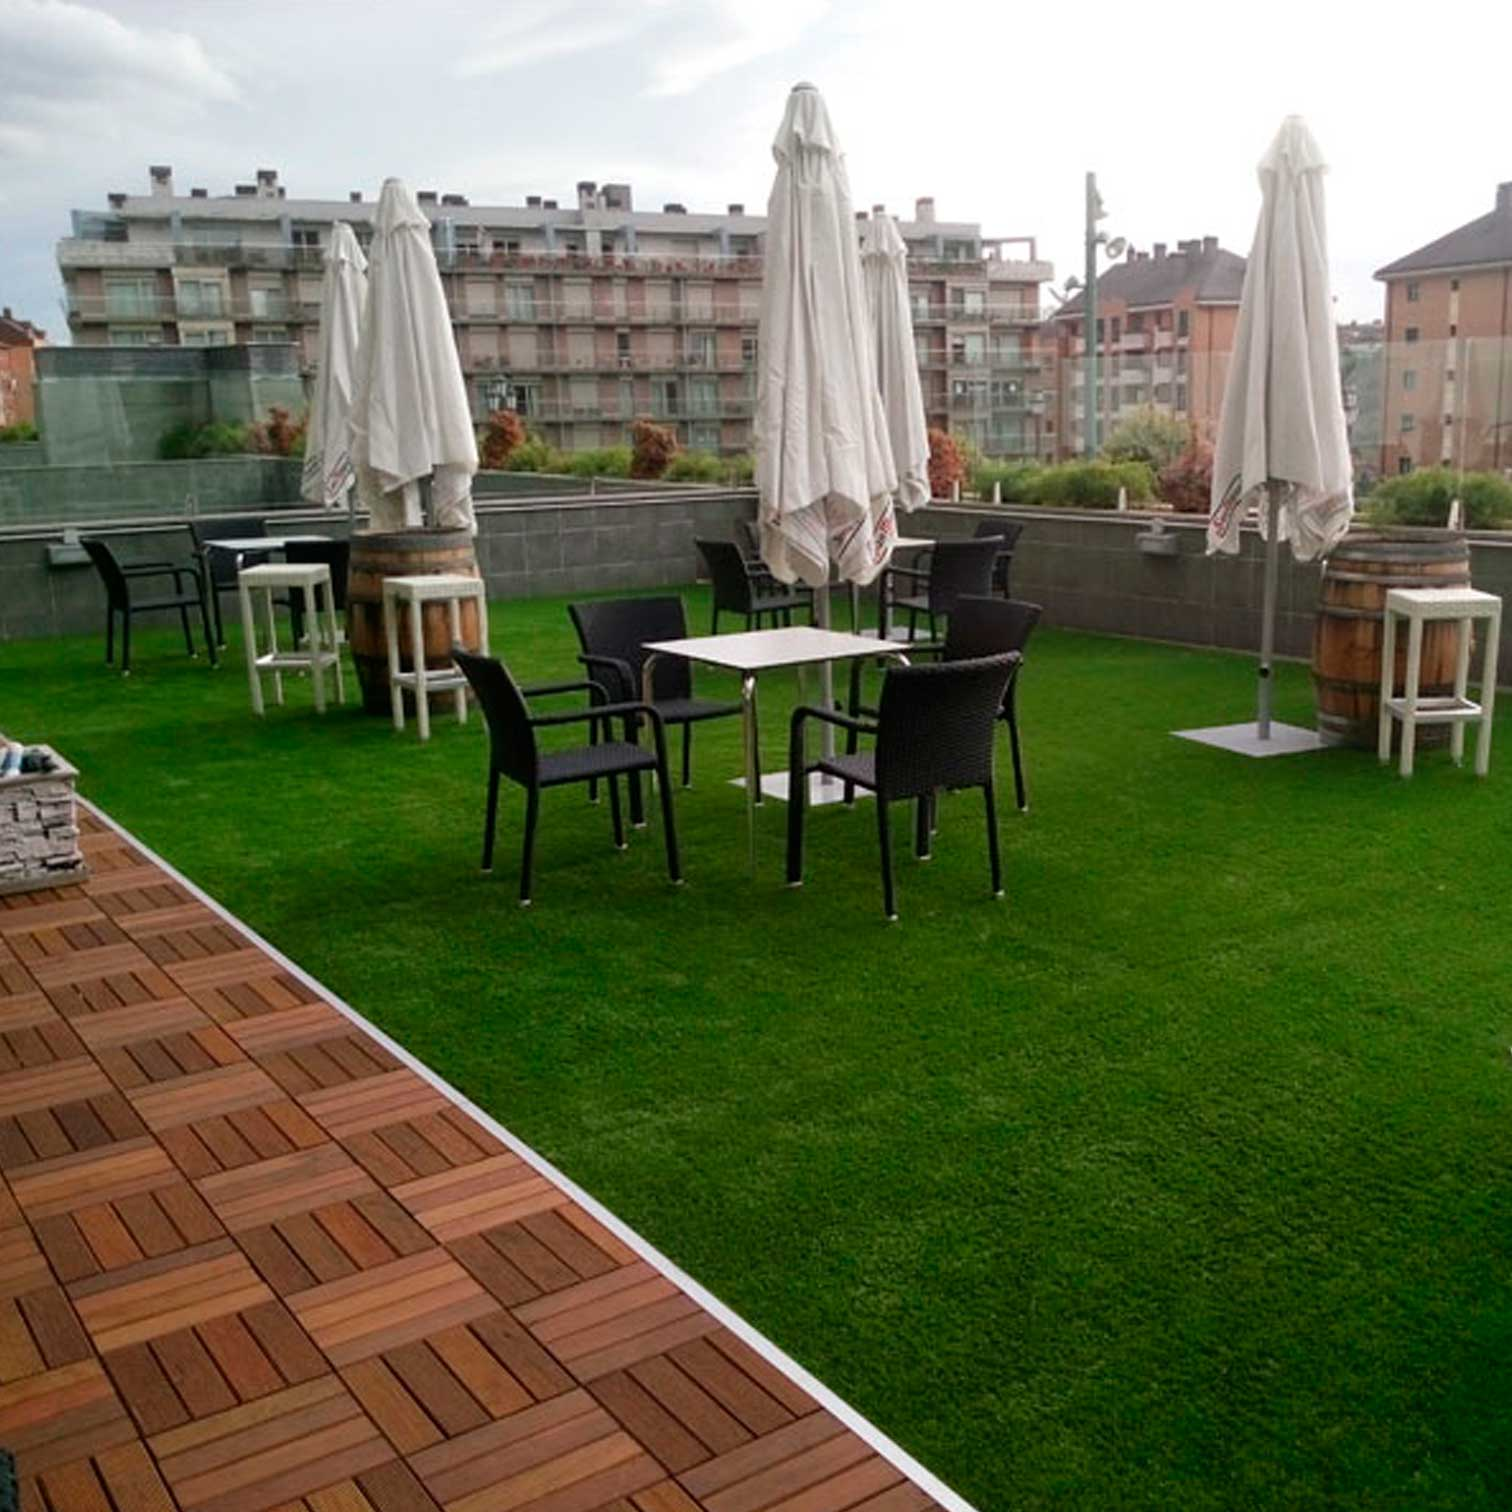 Cesped artificial terraza simple ten tu terraza lista en pasos with cesped artificial terraza - Cesped artificial terraza ...